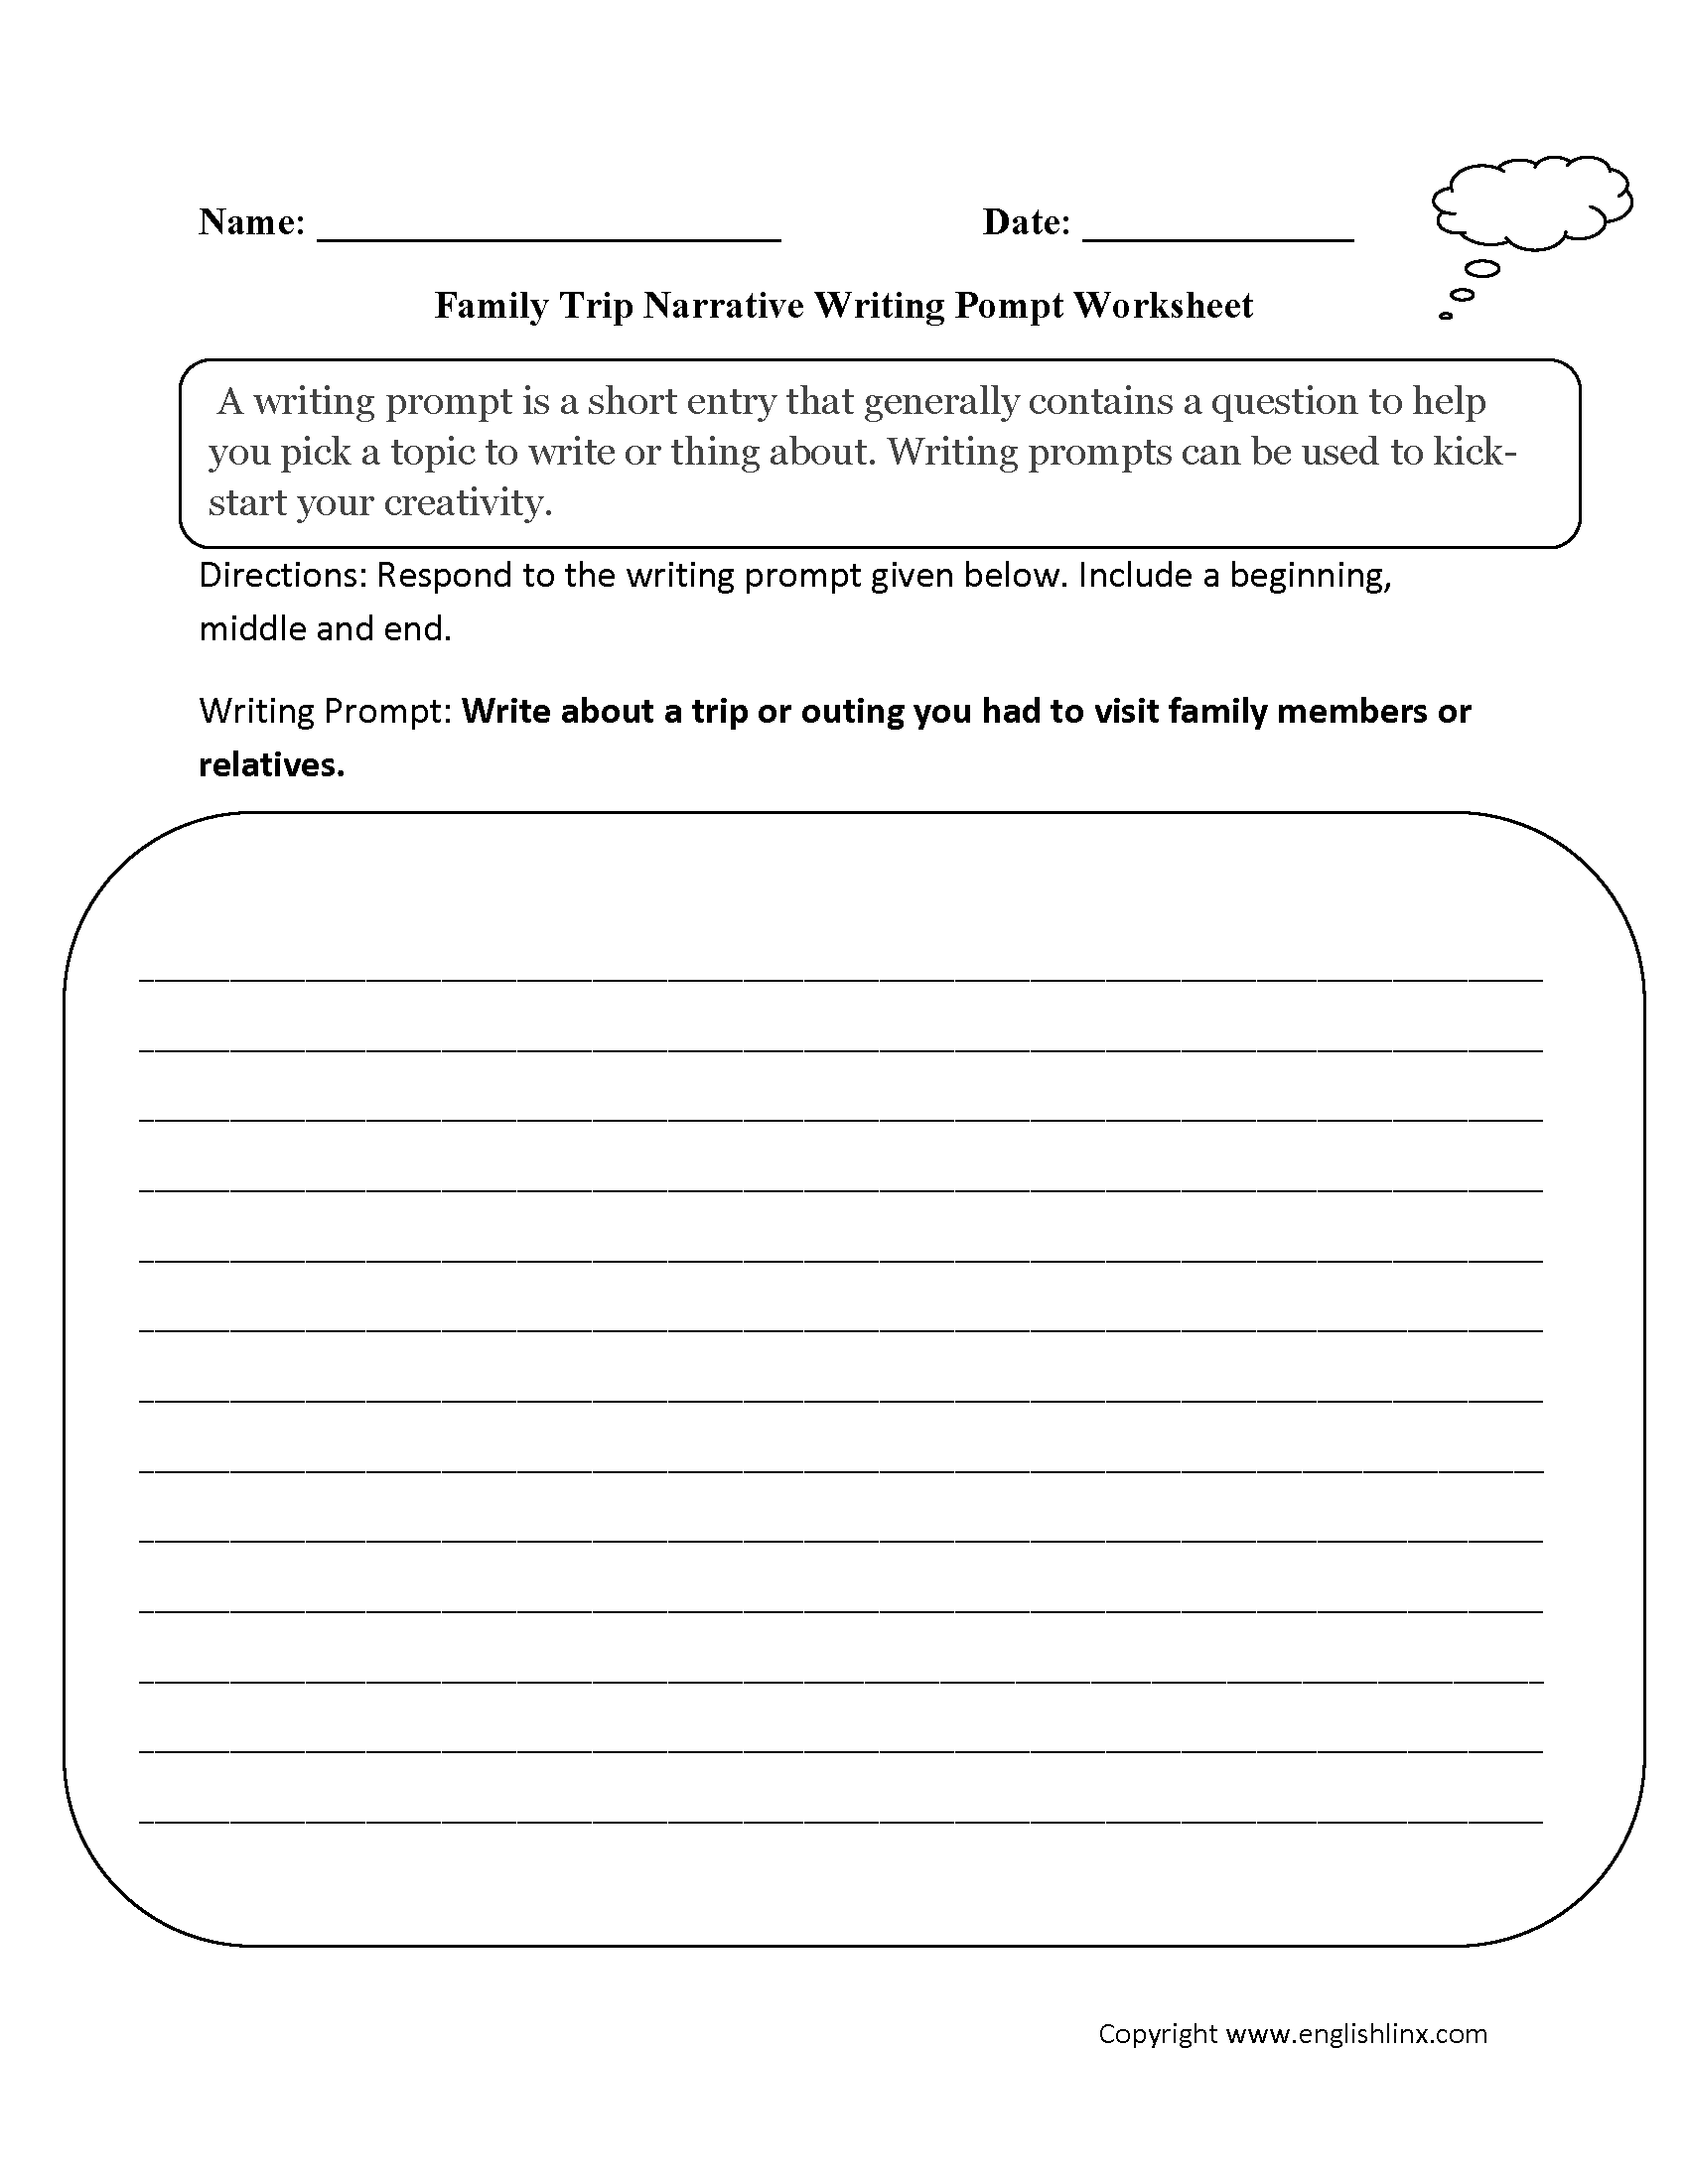 Worksheet Writing Worksheets For 6th Grade writing prompts worksheets narrative prompt worksheet